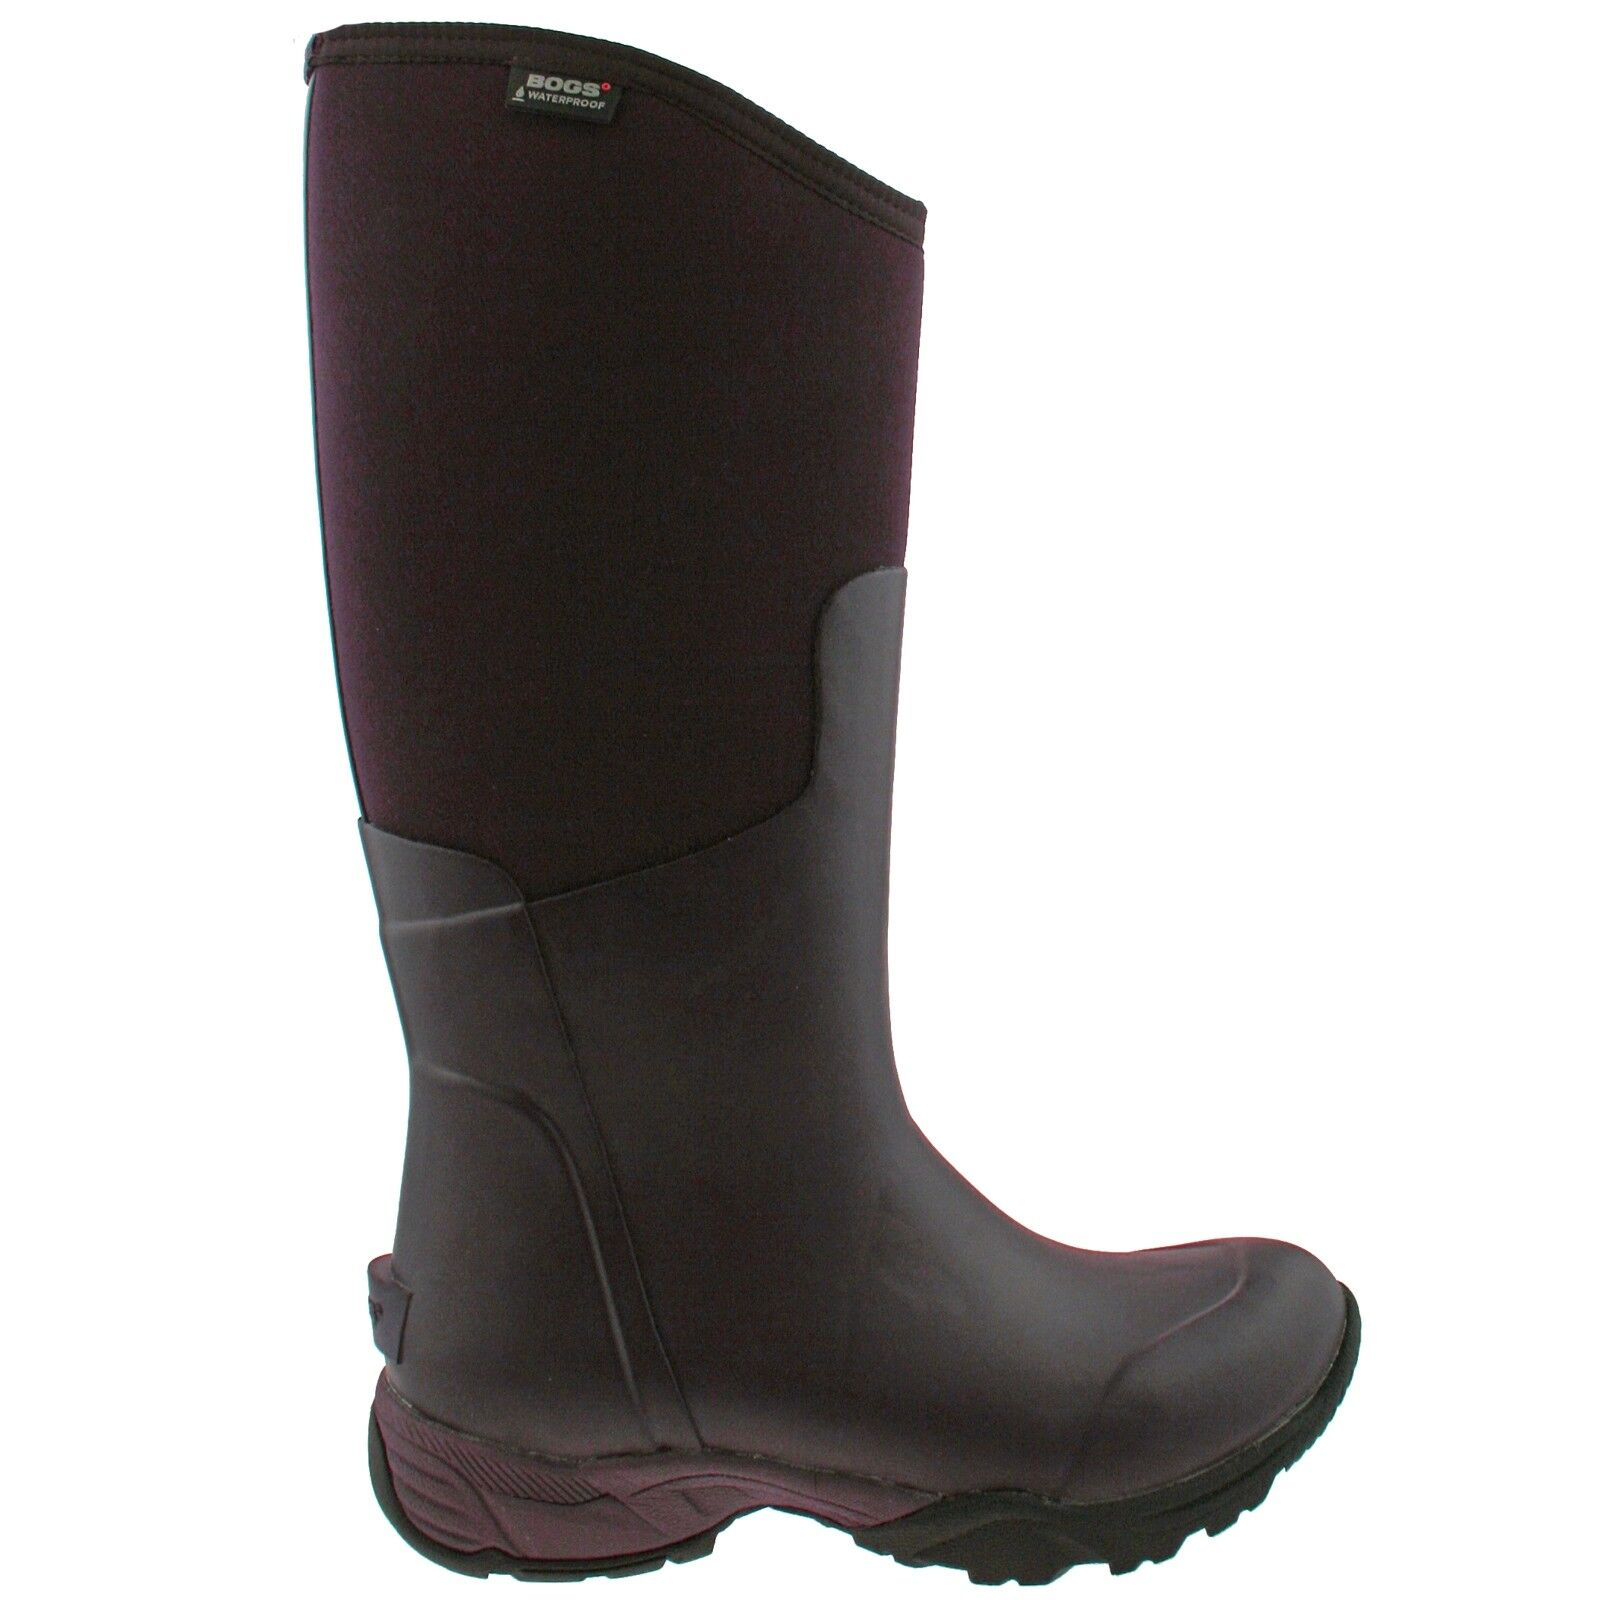 LADIES BOGS ESSENTIAL TALL SOLID AUBERGINE INSULATED WARM WELLIES Stiefel 78583 550